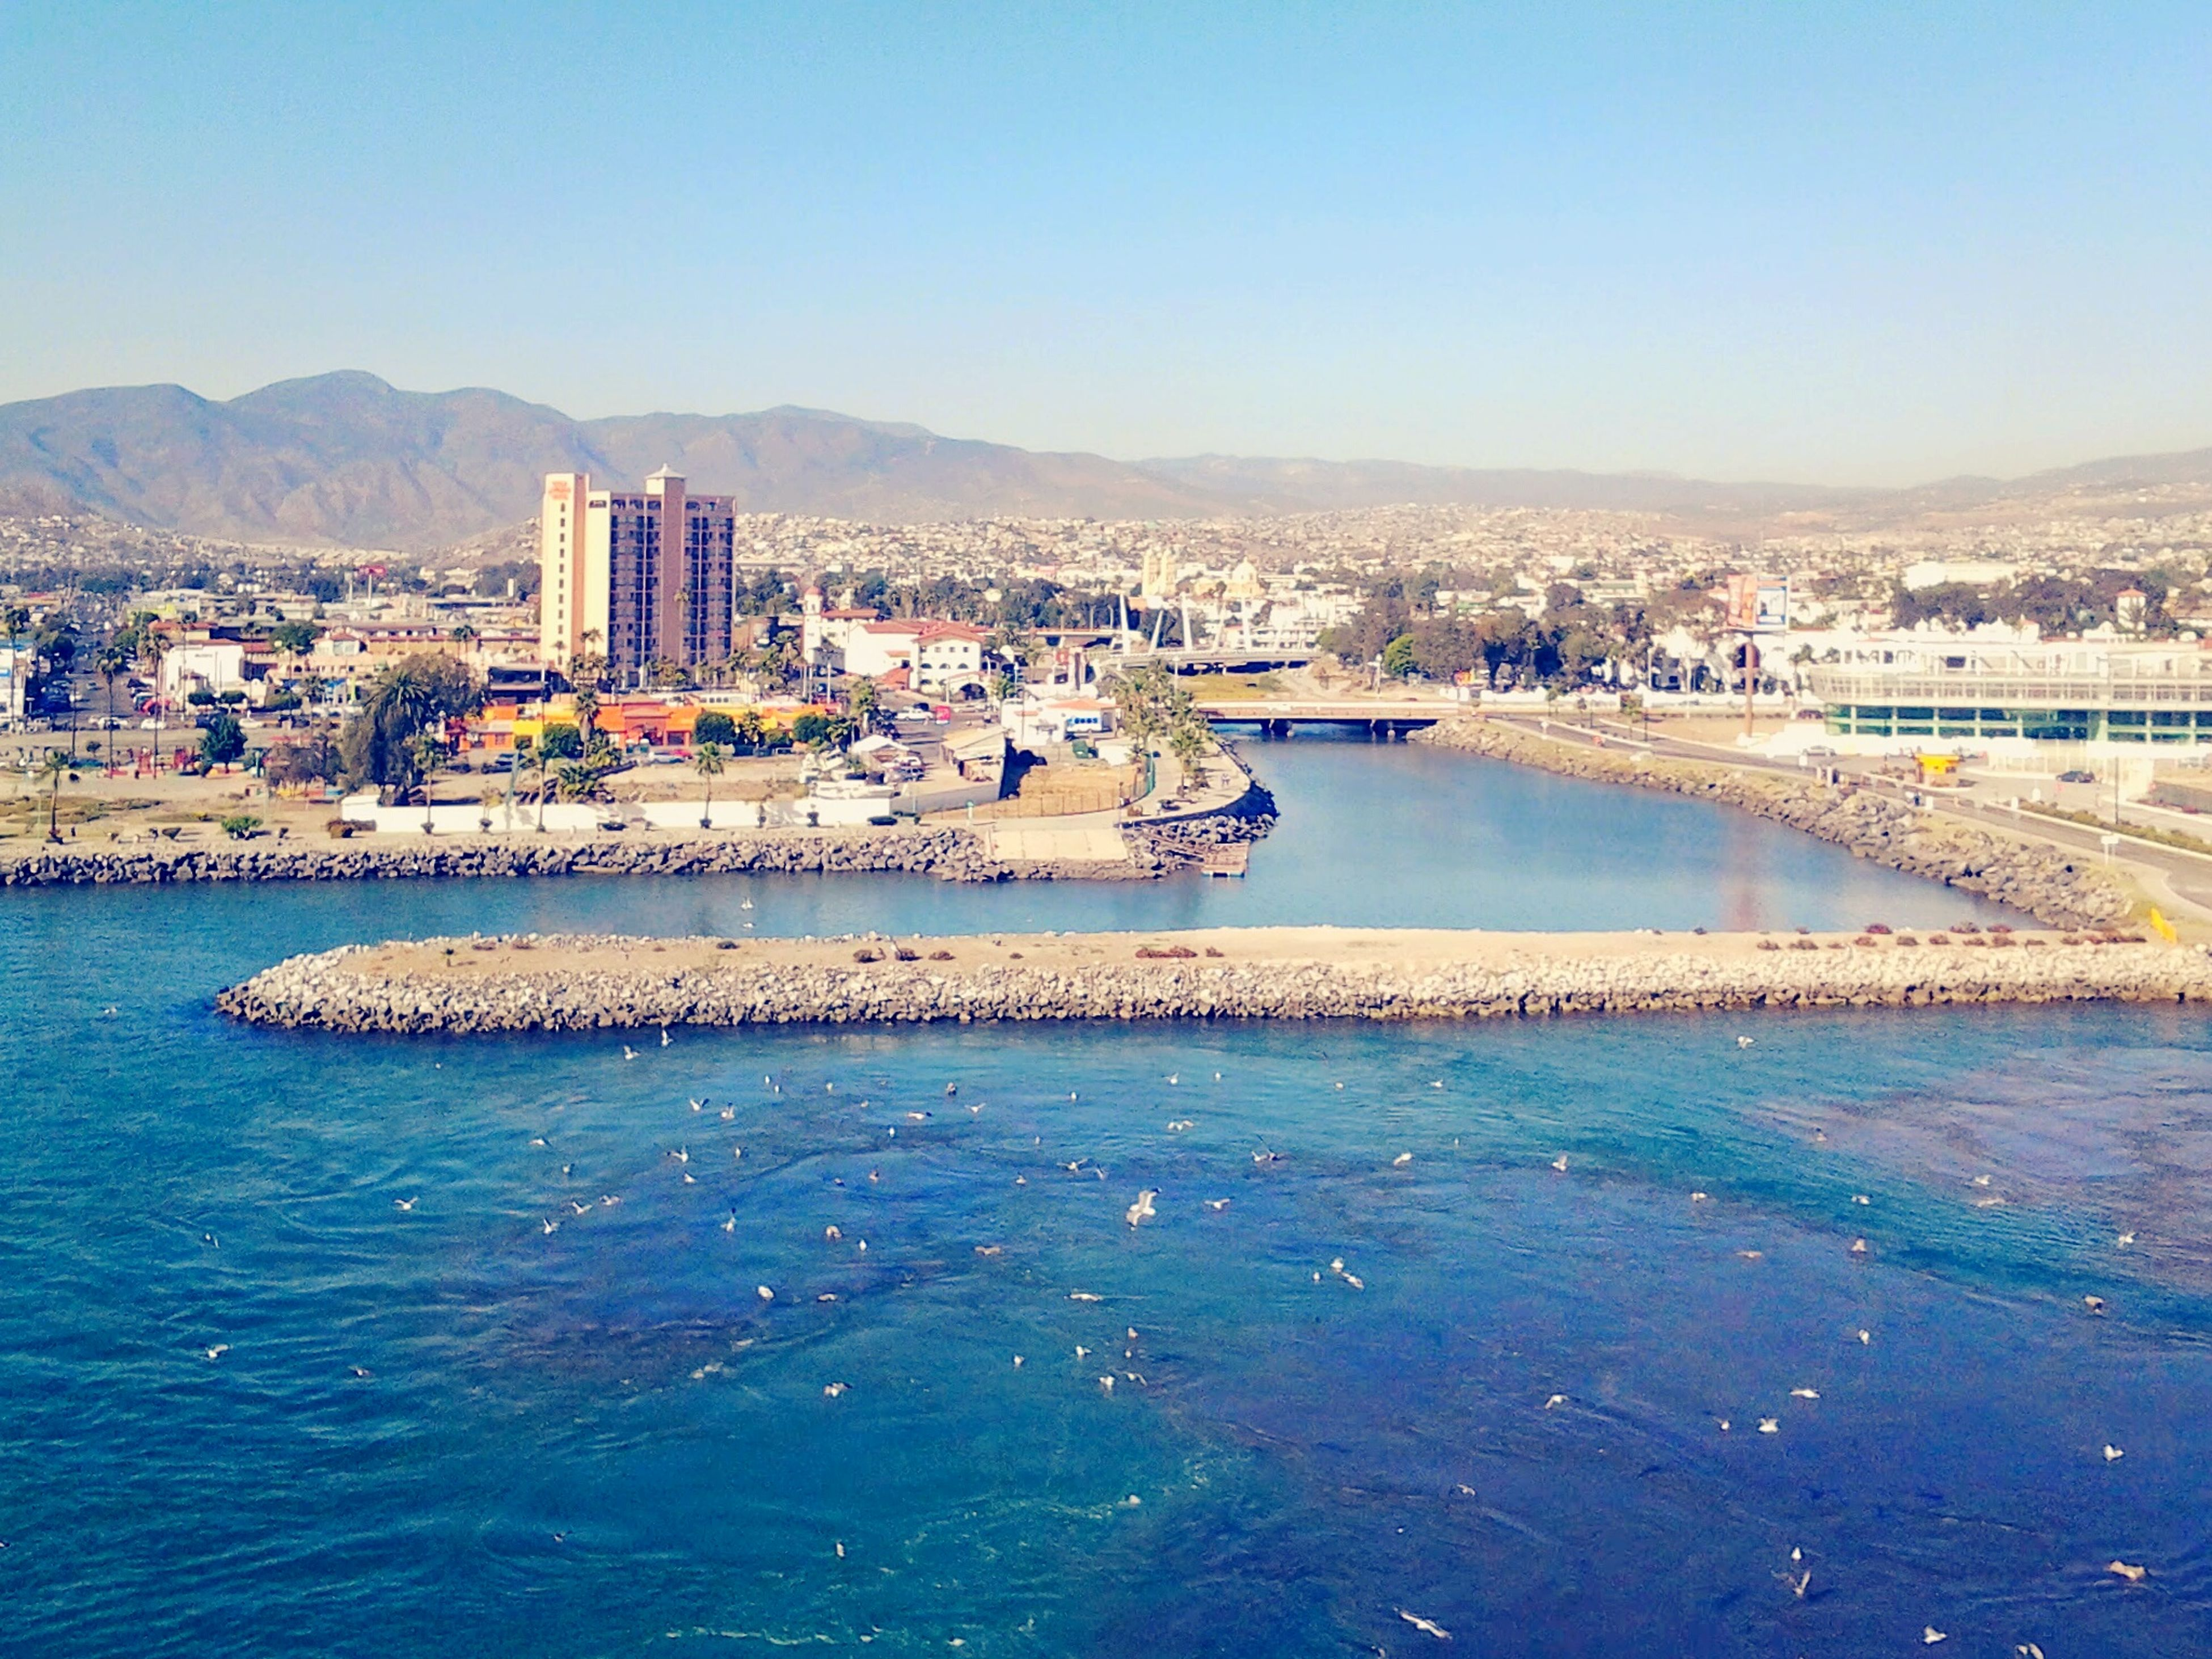 clear sky, water, built structure, architecture, copy space, building exterior, mountain, sea, blue, city, cityscape, river, coastline, beach, transportation, waterfront, mountain range, connection, outdoors, scenics